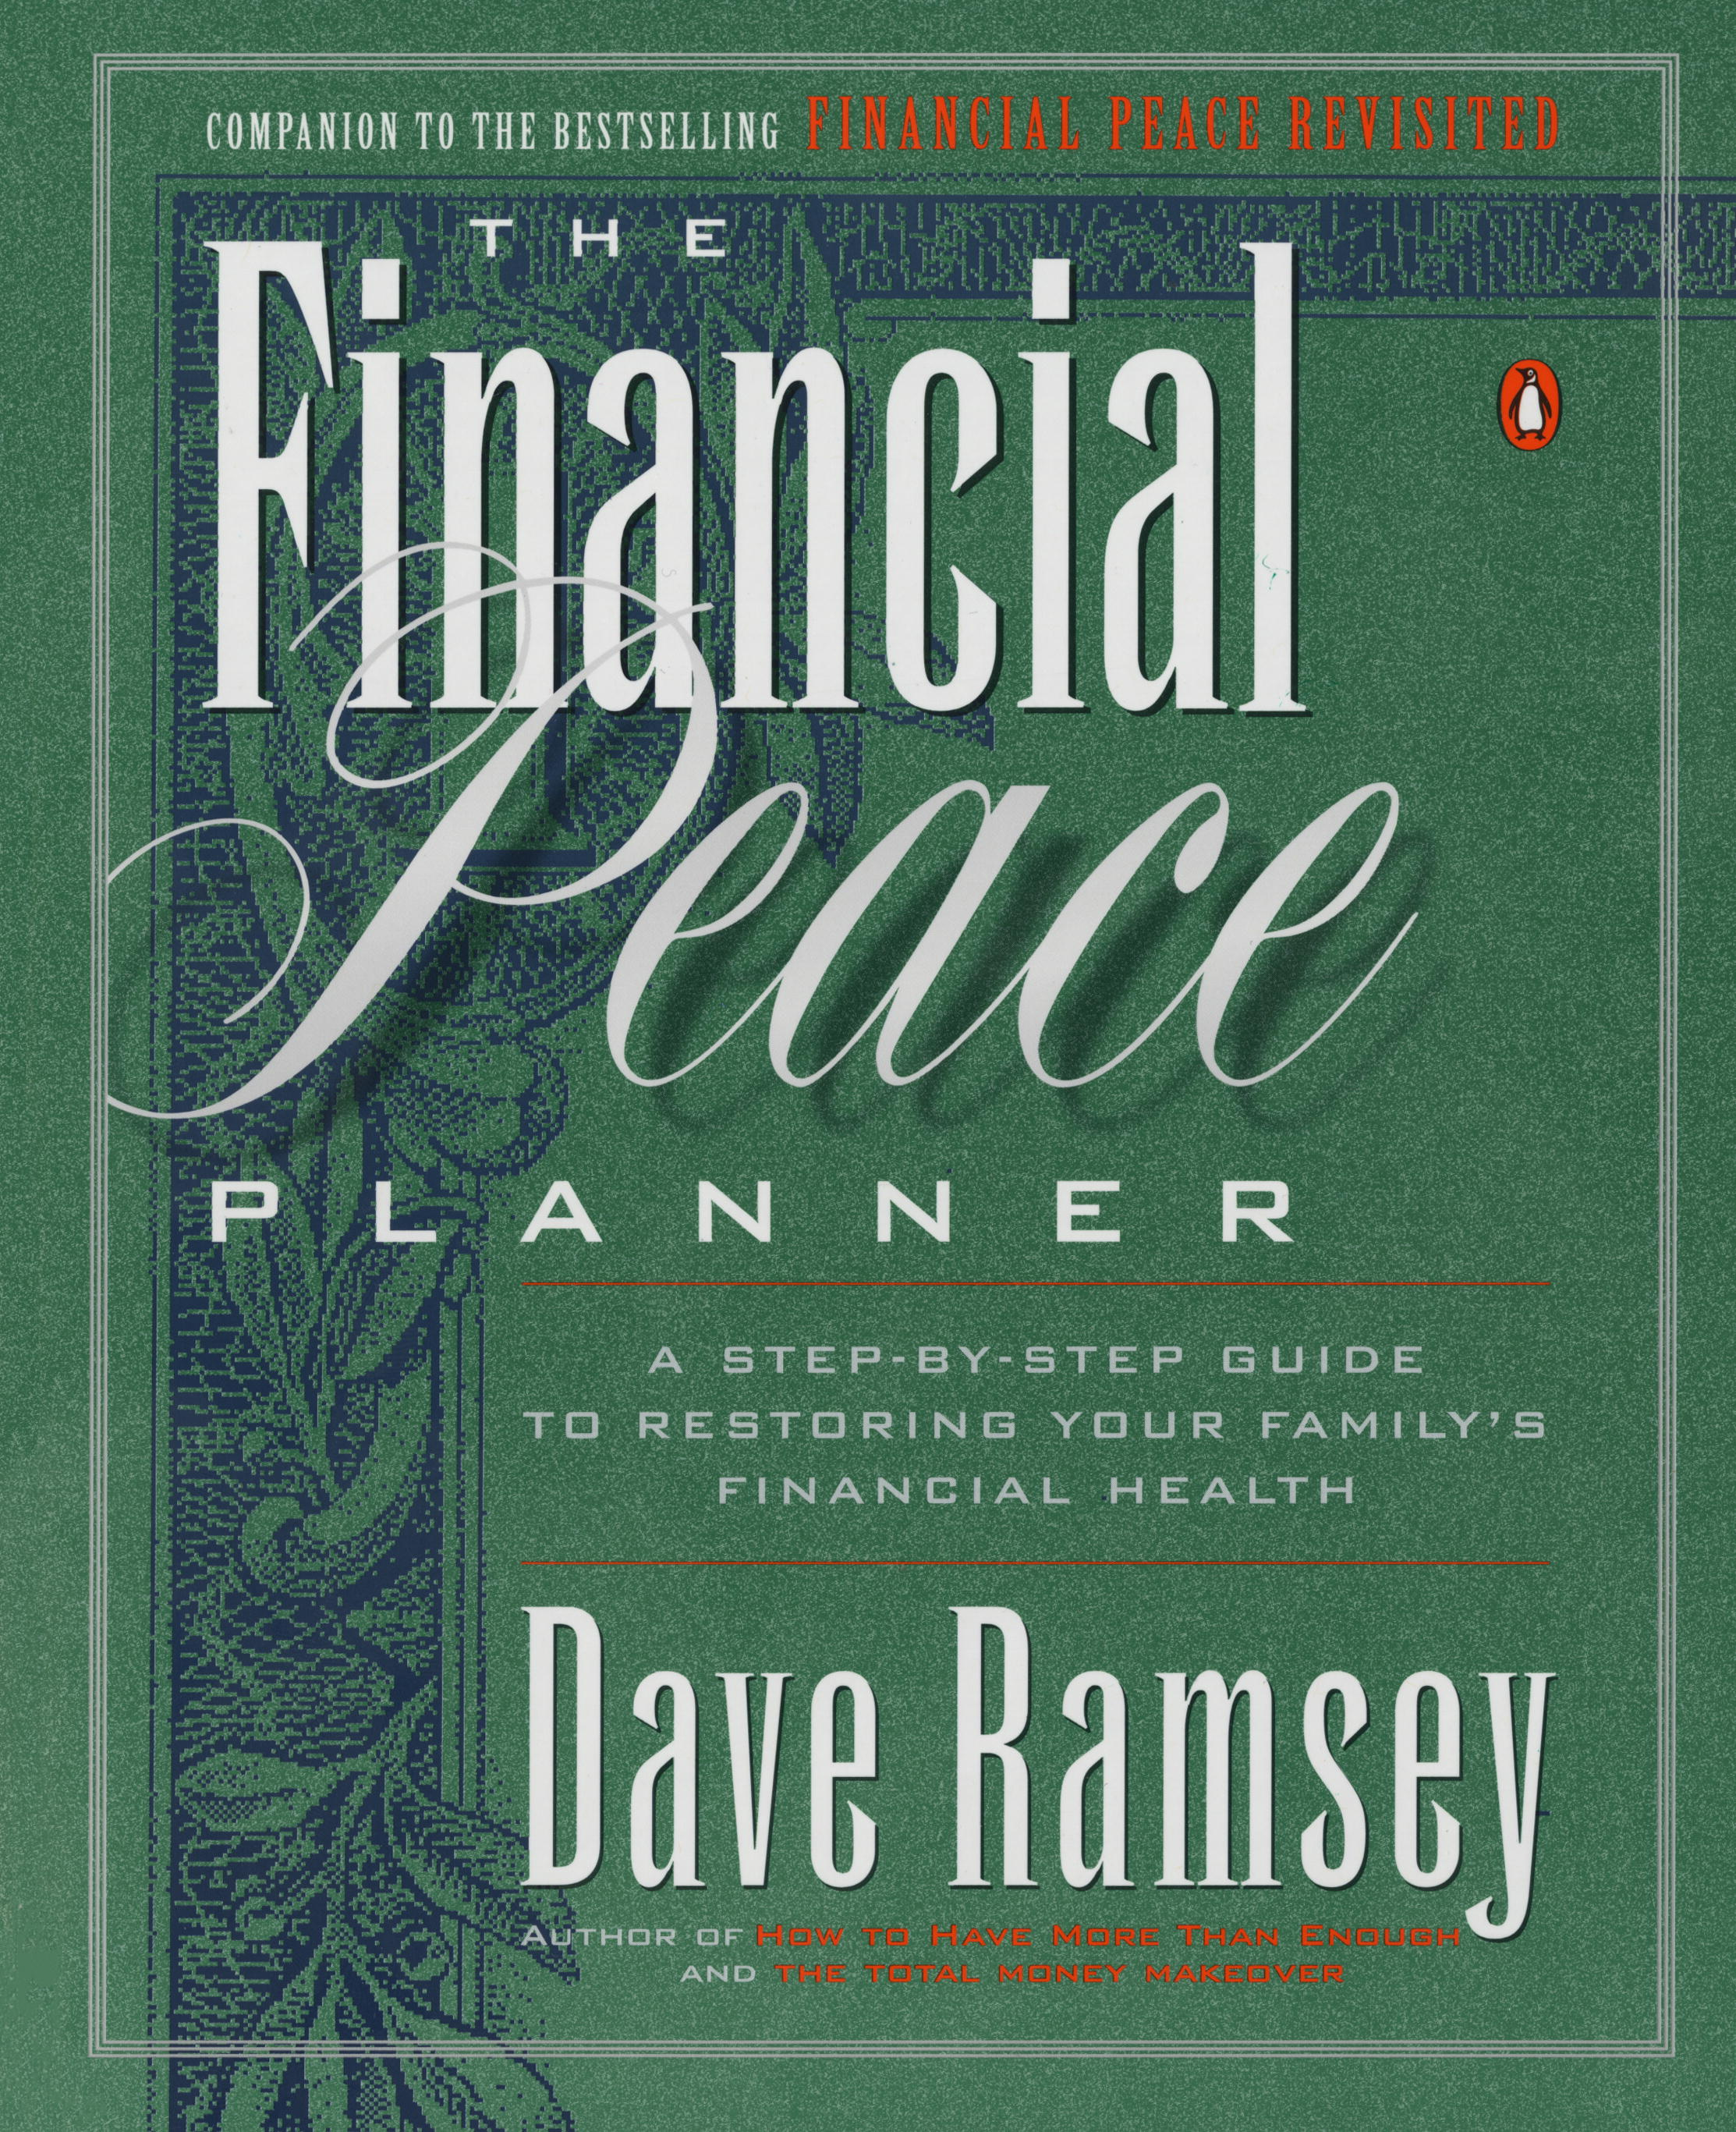 Download Ebook The Financial Peace Planner by Dave Ramsey Pdf